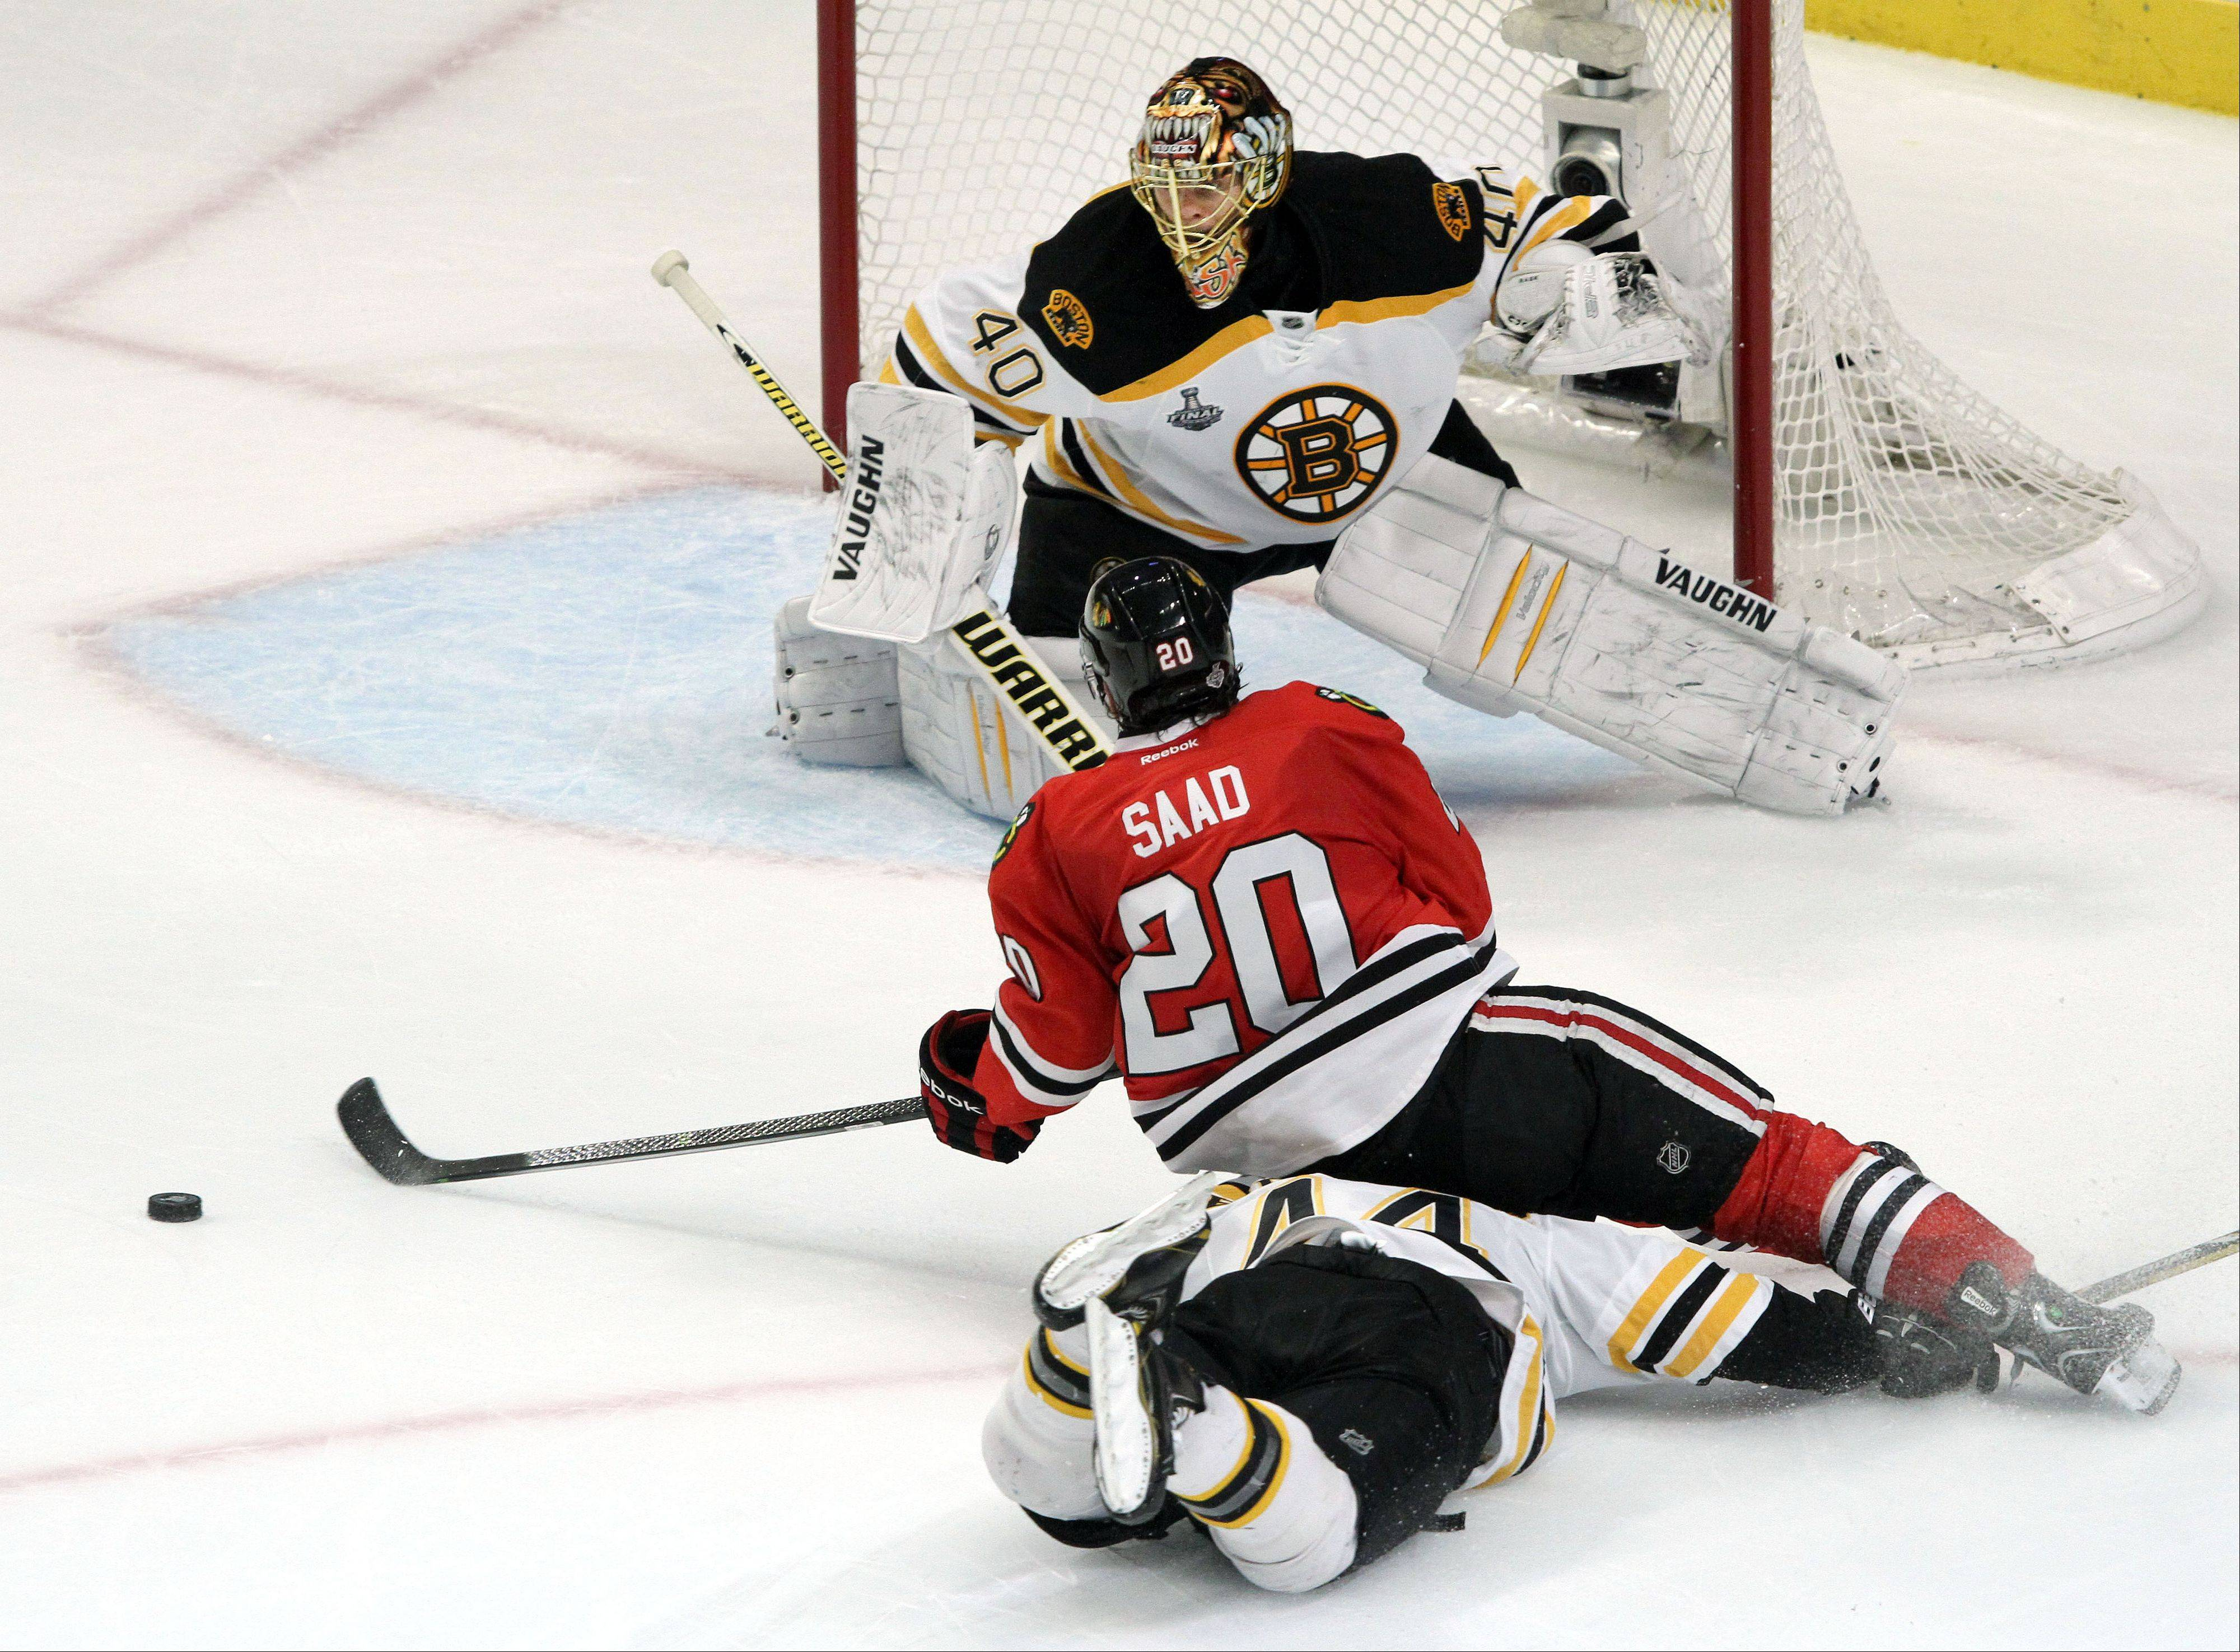 The Blackhawks' Brandon Saad gets tripped by Bruins defenseman Dennis Seidenberg during Game 2 of the Stanley Cup Final at the United Center on Saturday.